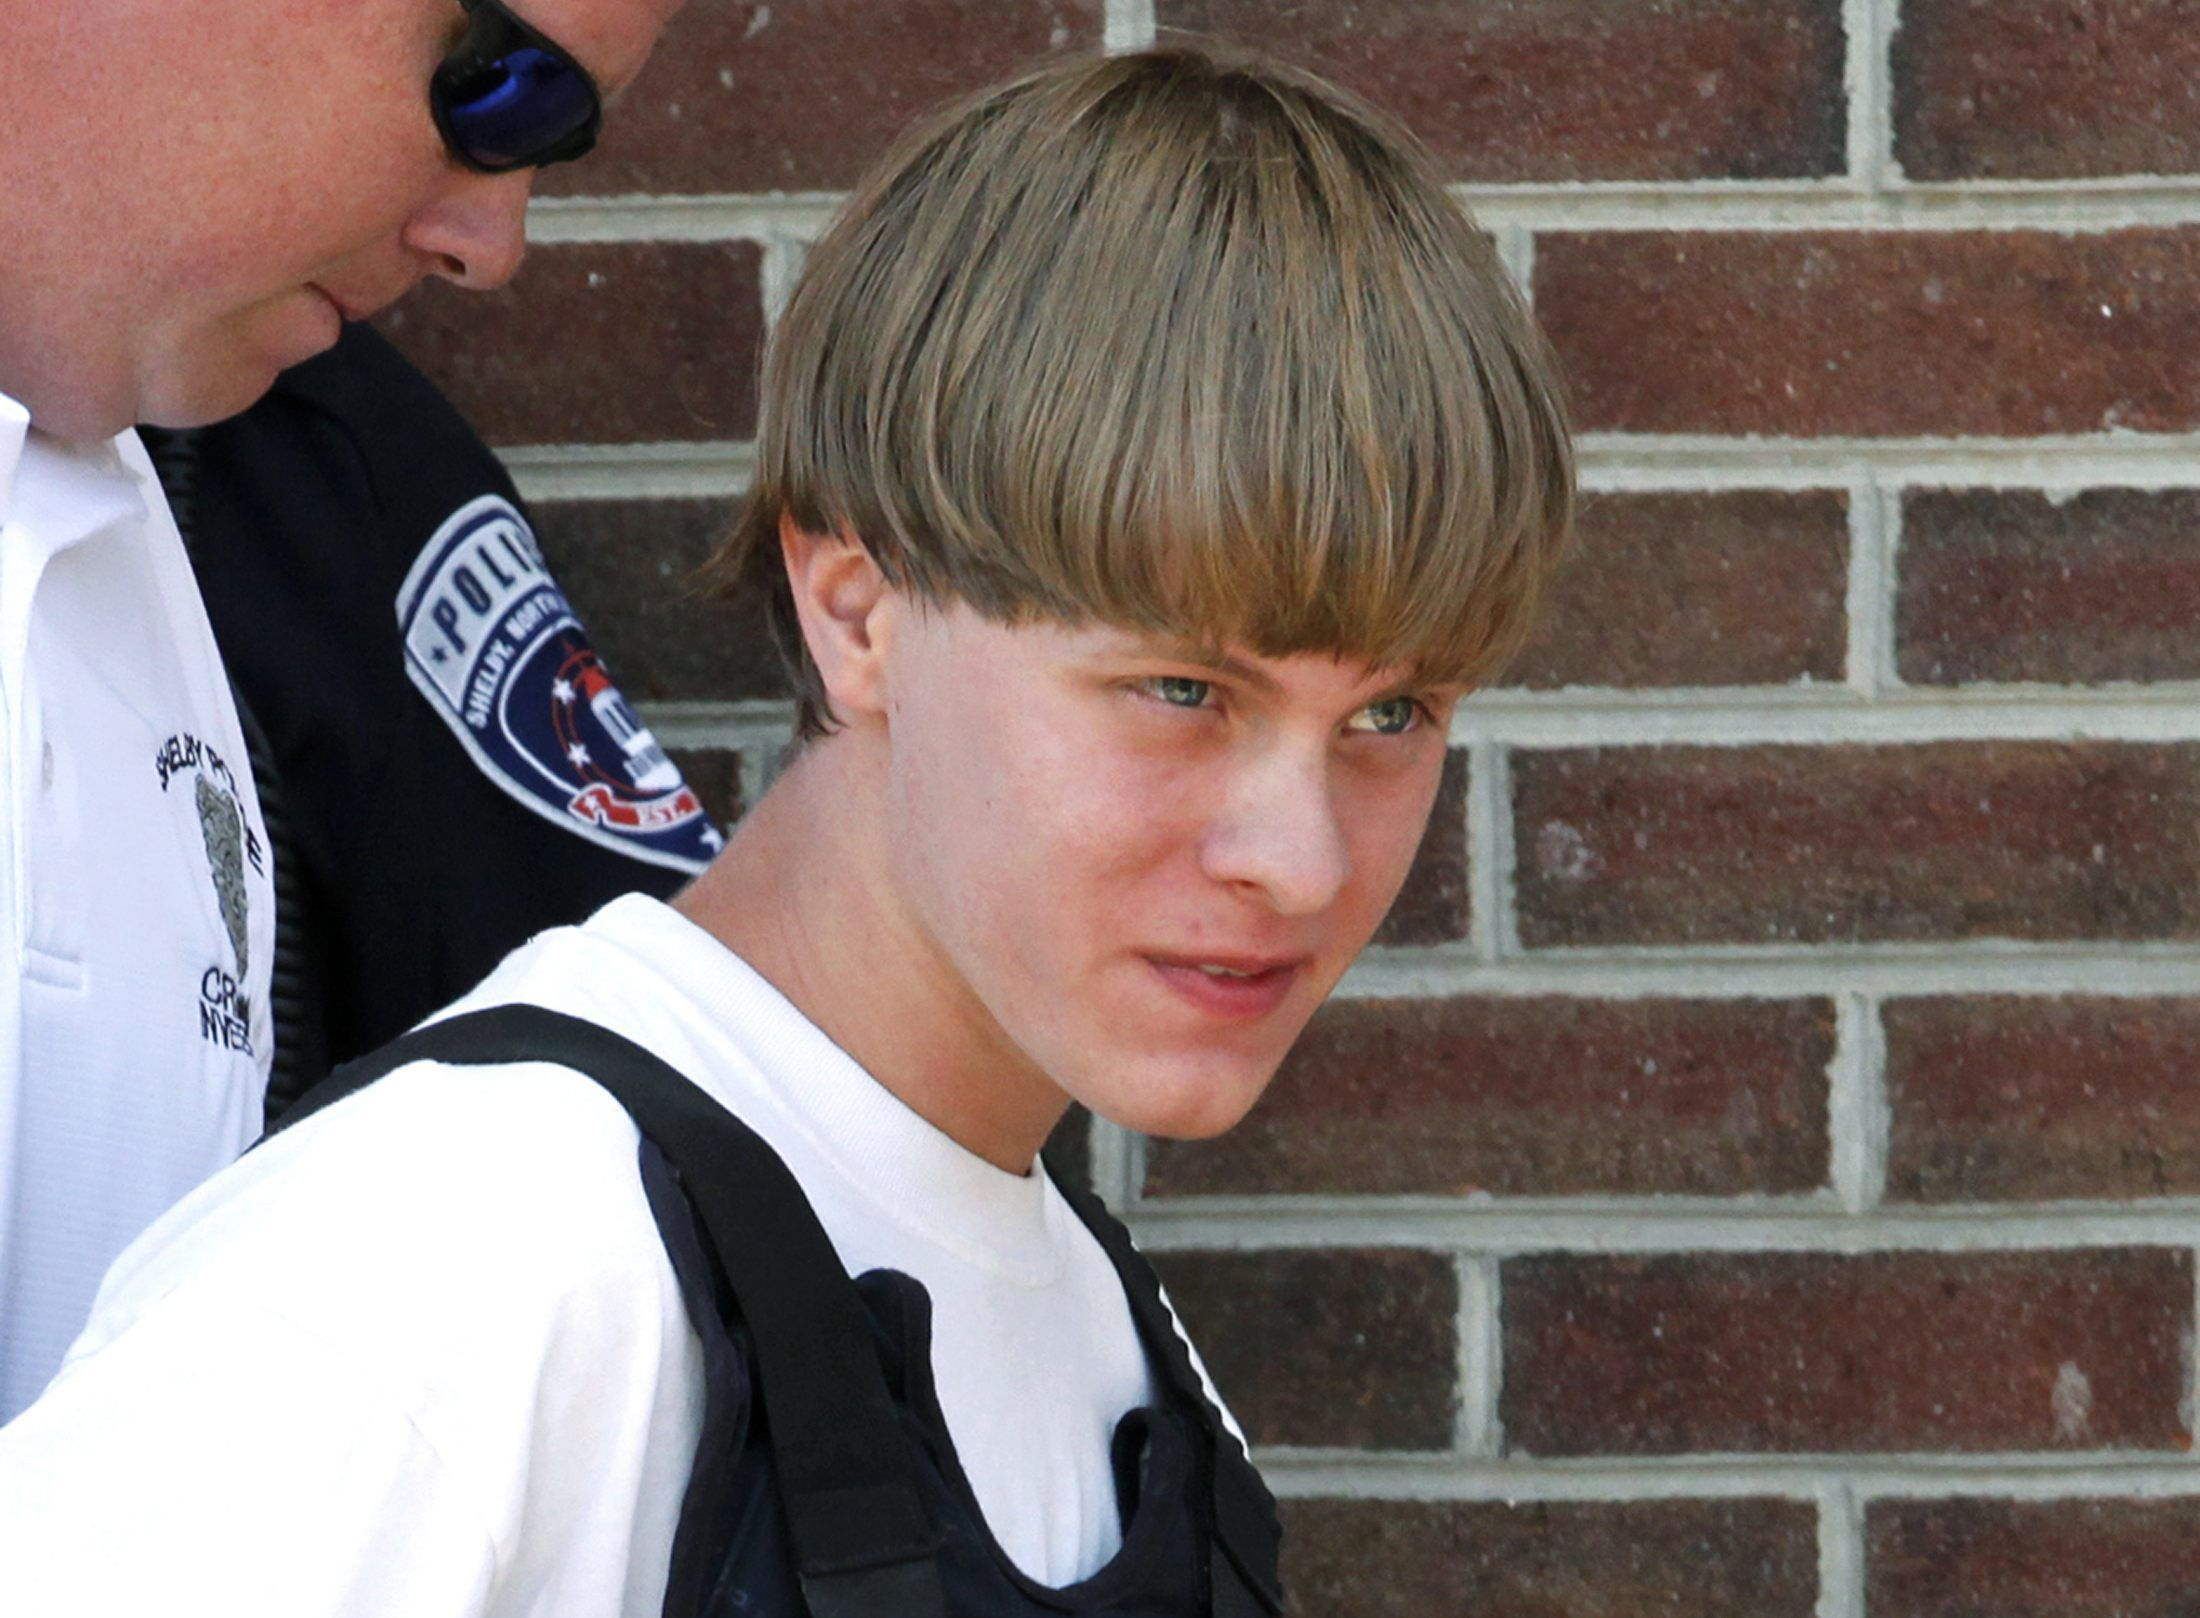 Photo of dylann Roof under arrest